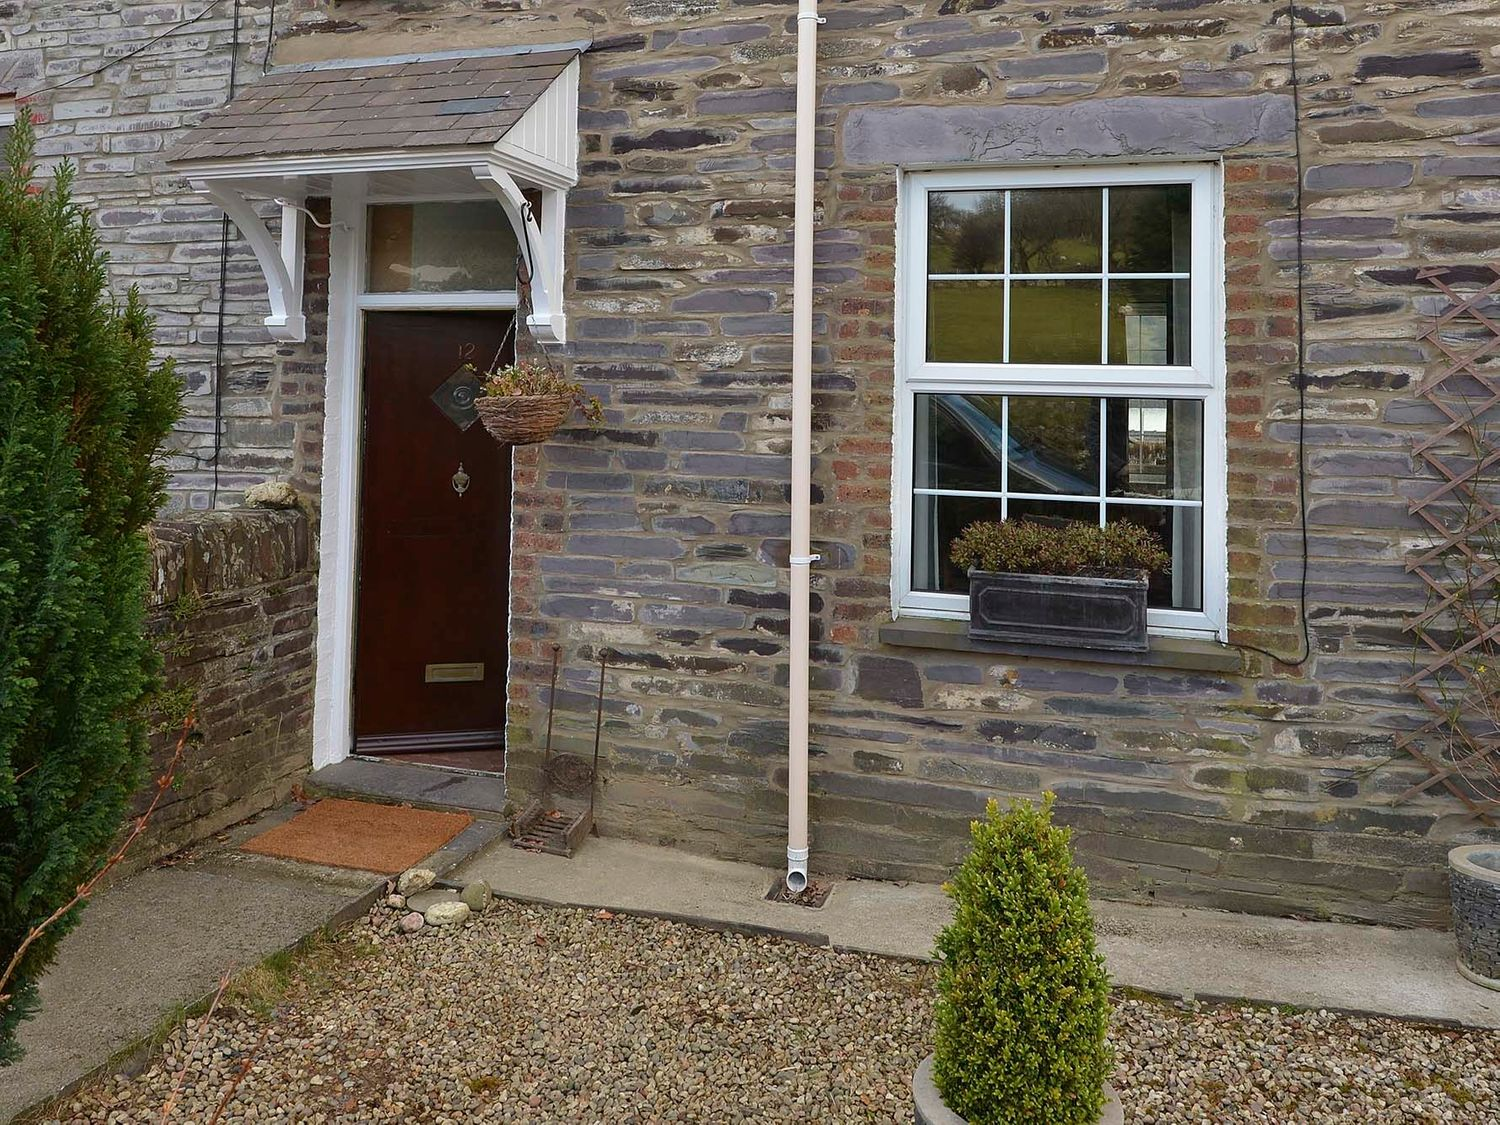 12 Victoria Terrace - North Wales - 1009098 - photo 1